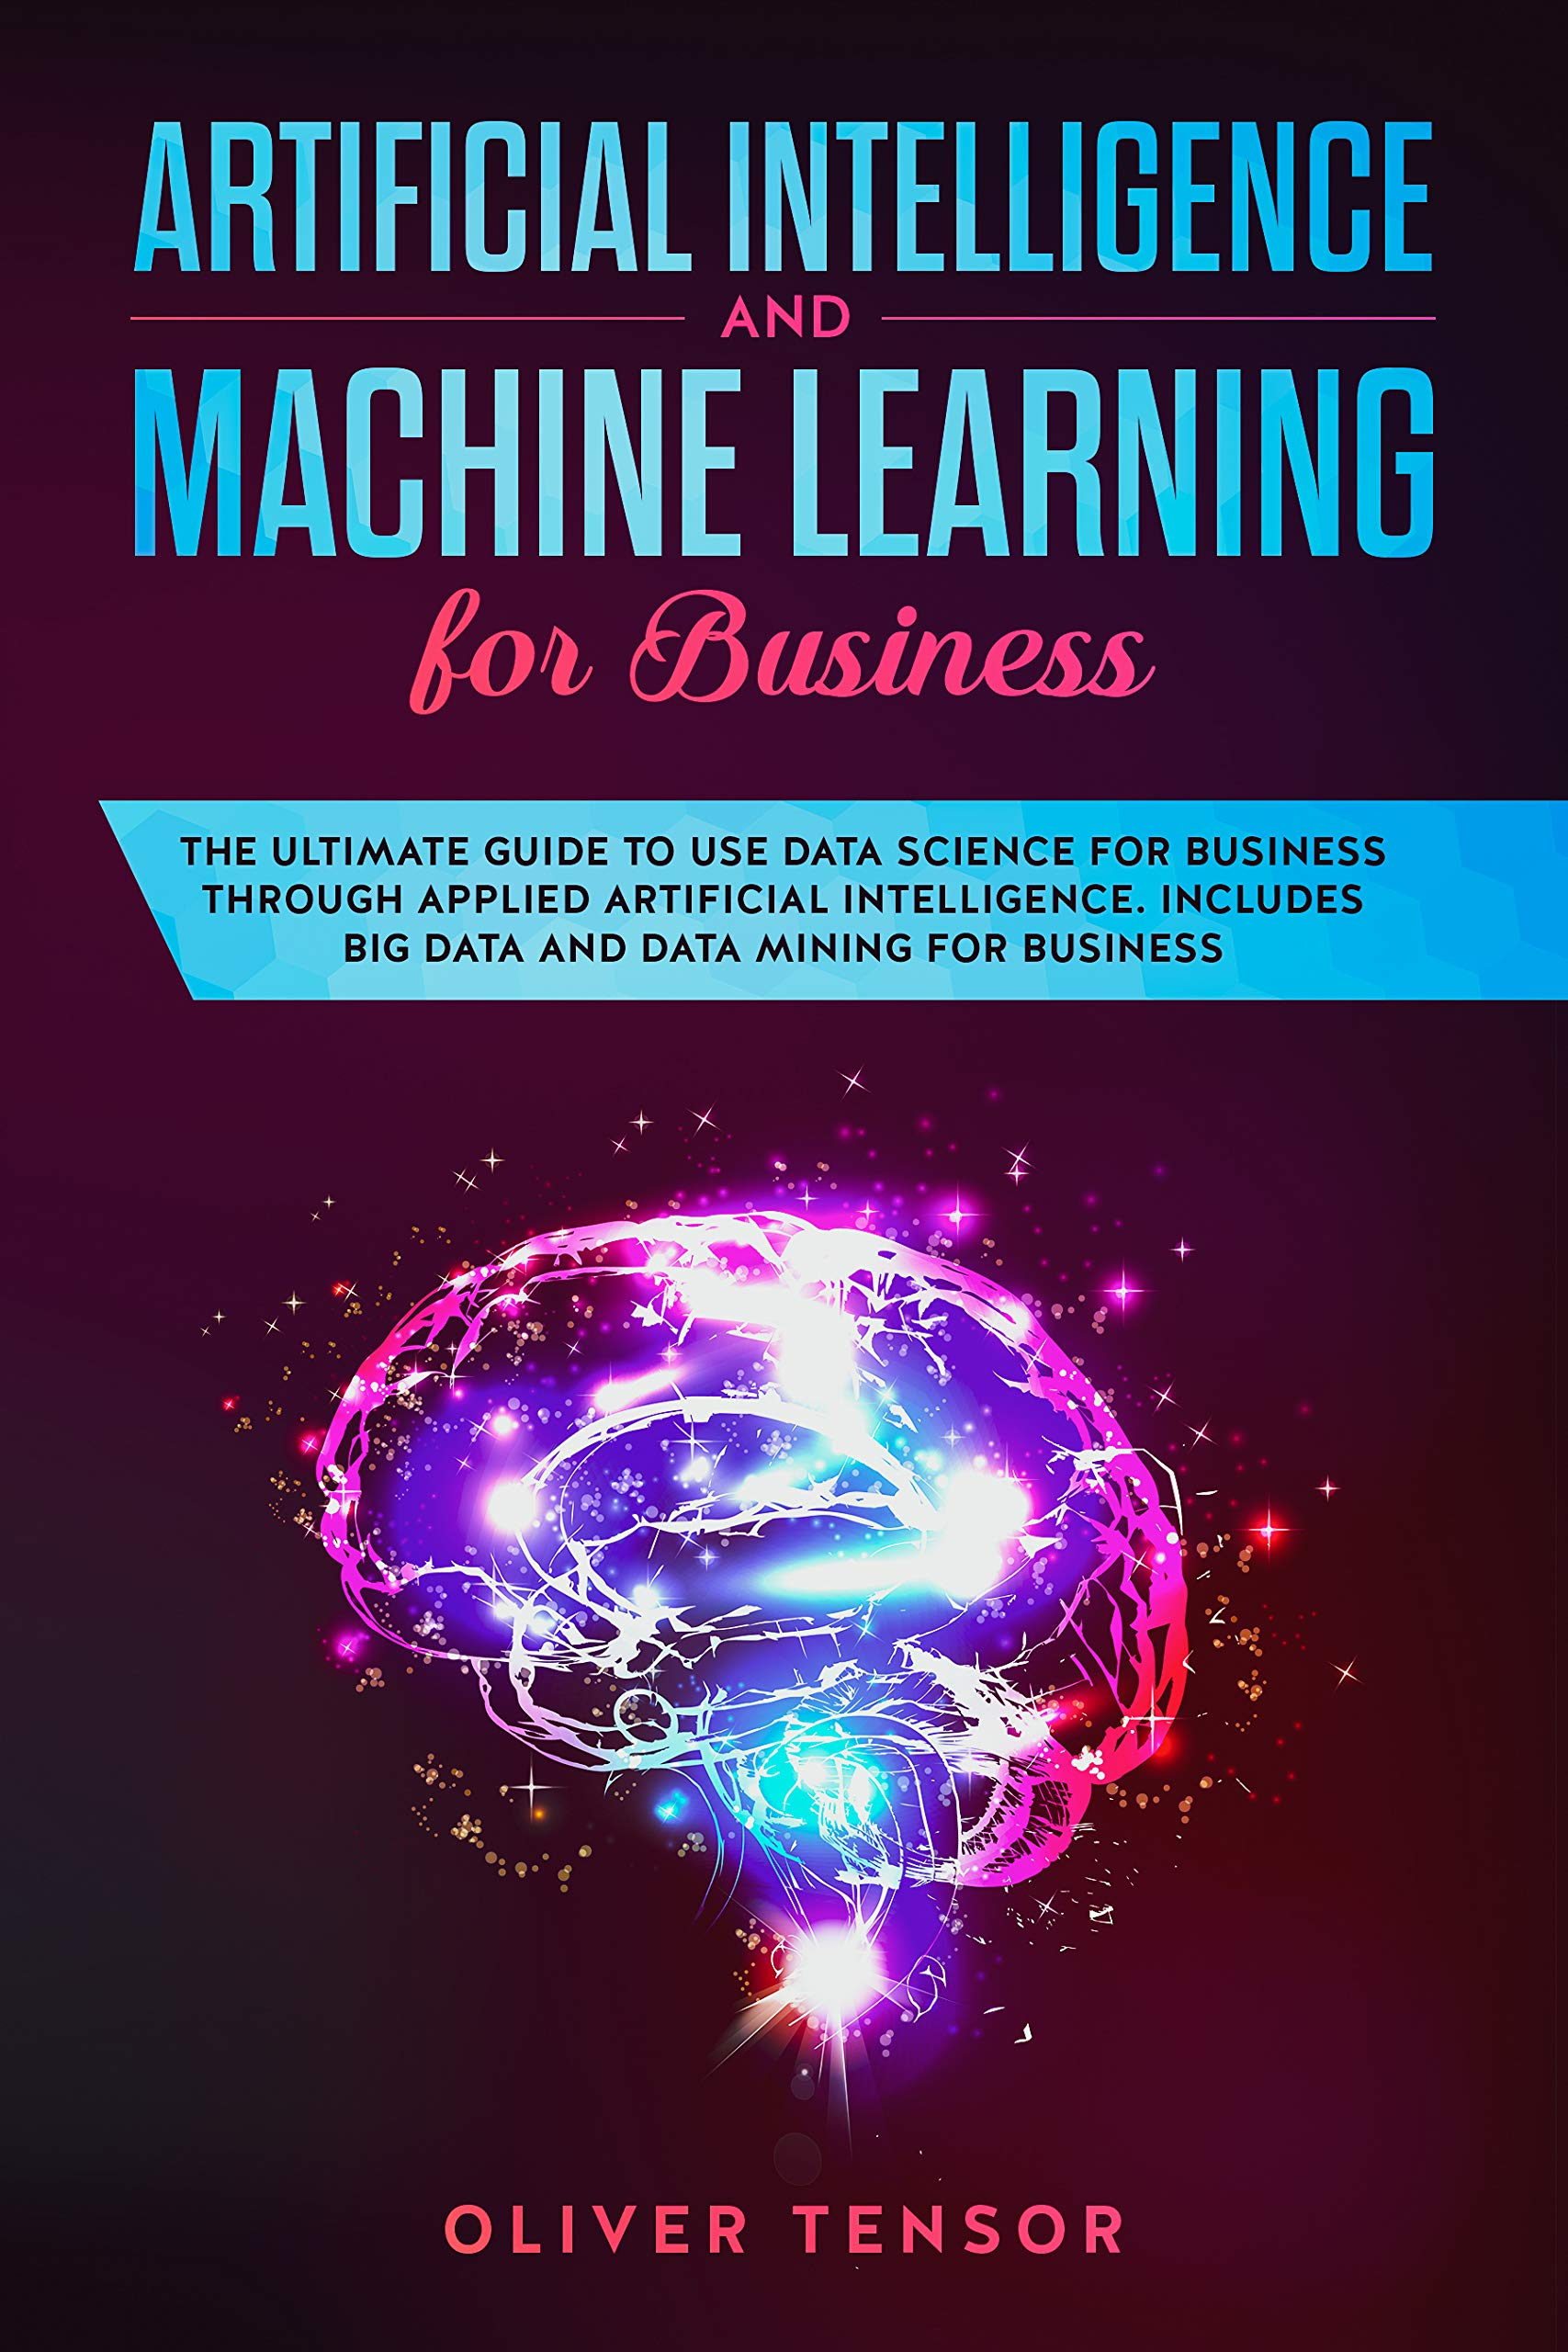 Artificial Intelligence And Machine Learning For Business  The Ultimate Guide To Use Data Science For Business Through Applied Artificial Intelligence. ... Data Mining For Business  English Edition